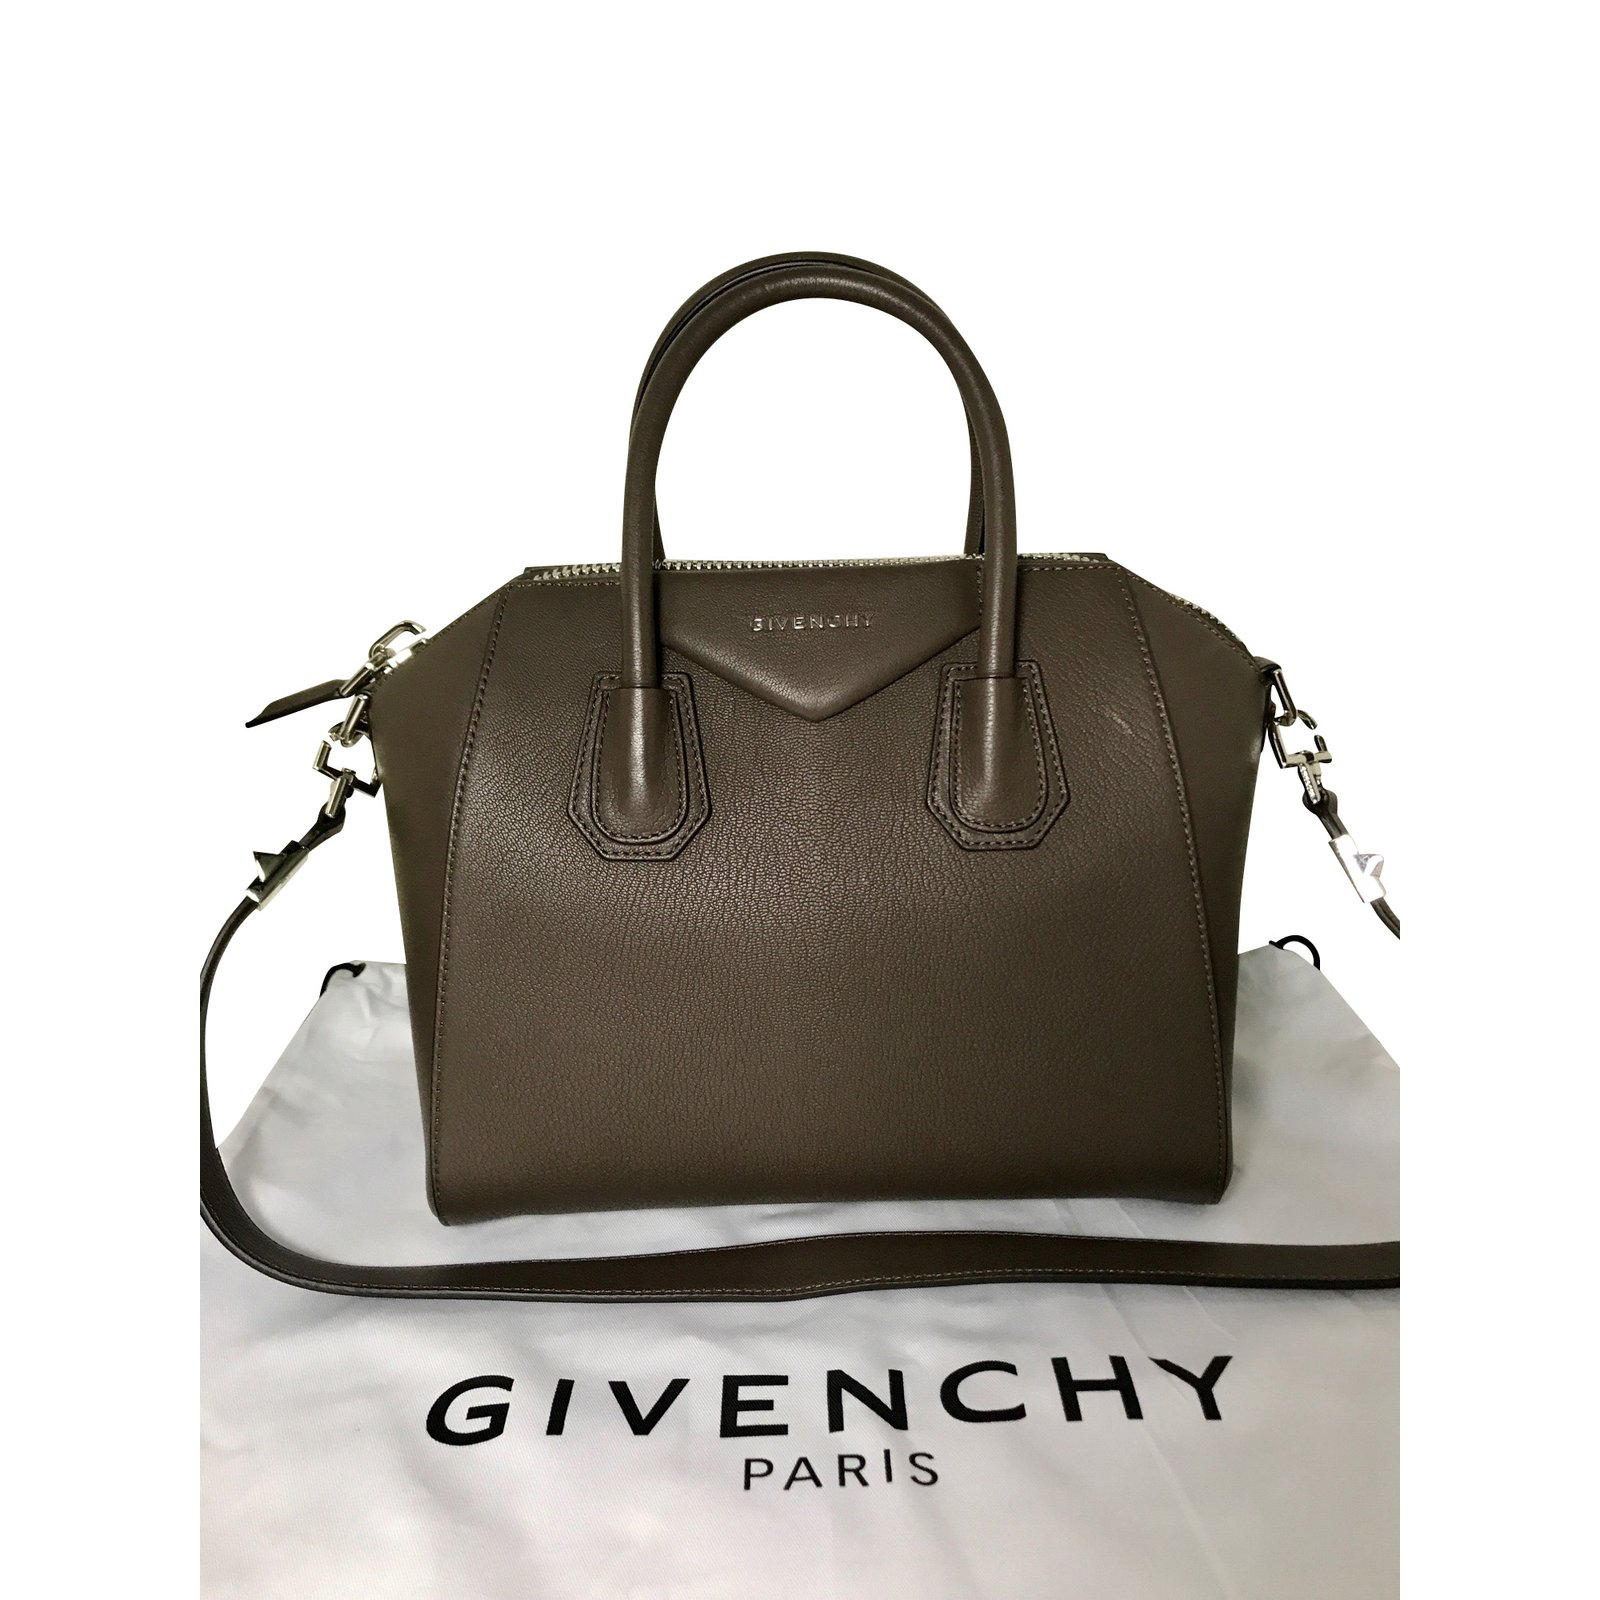 Givenchy GIVENCHY ANTIGONA SMALL HEATER GRAY BREND NEW WITH TAG Handbags  Leather Dark grey ref. 475c604ac